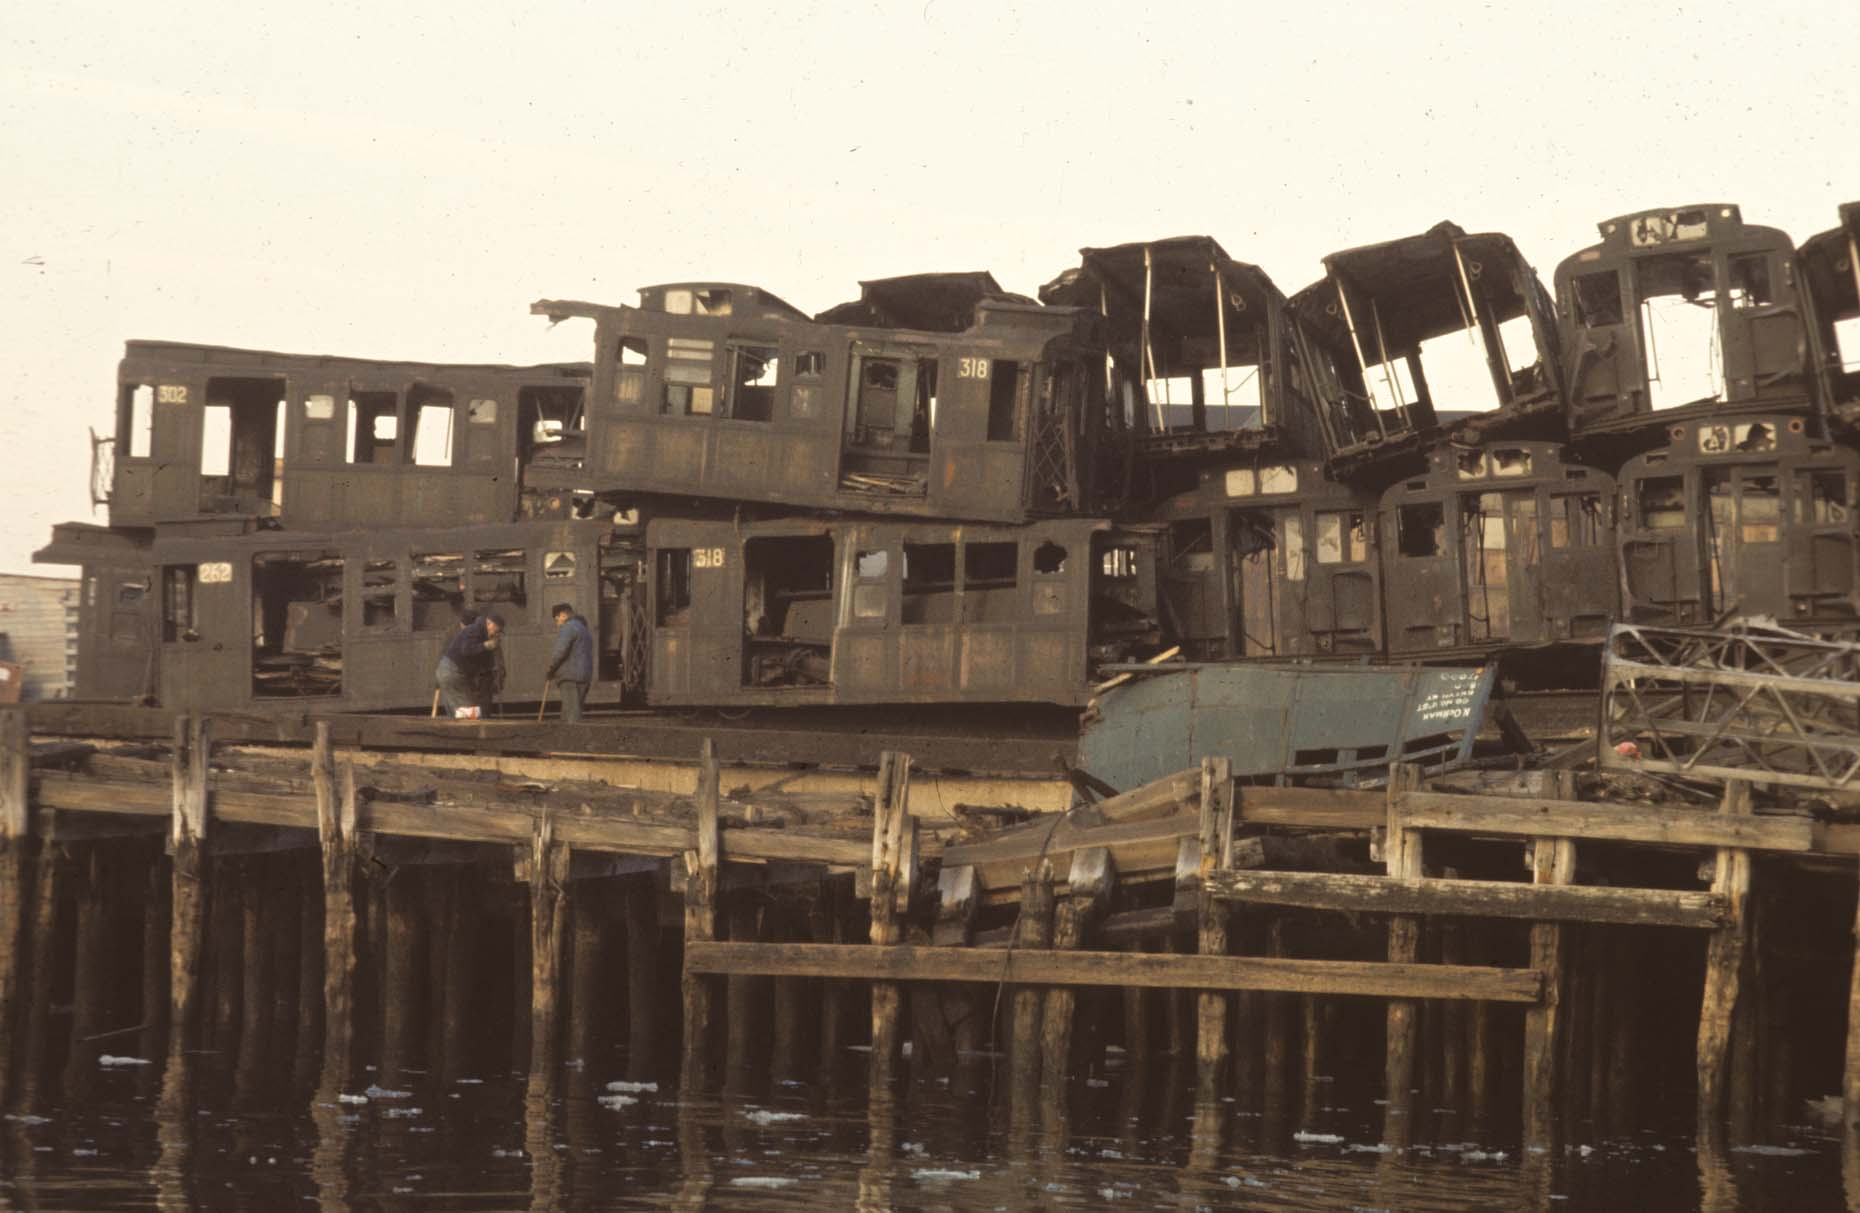 60_Pier, South Brooklyn, 1970_.jpg